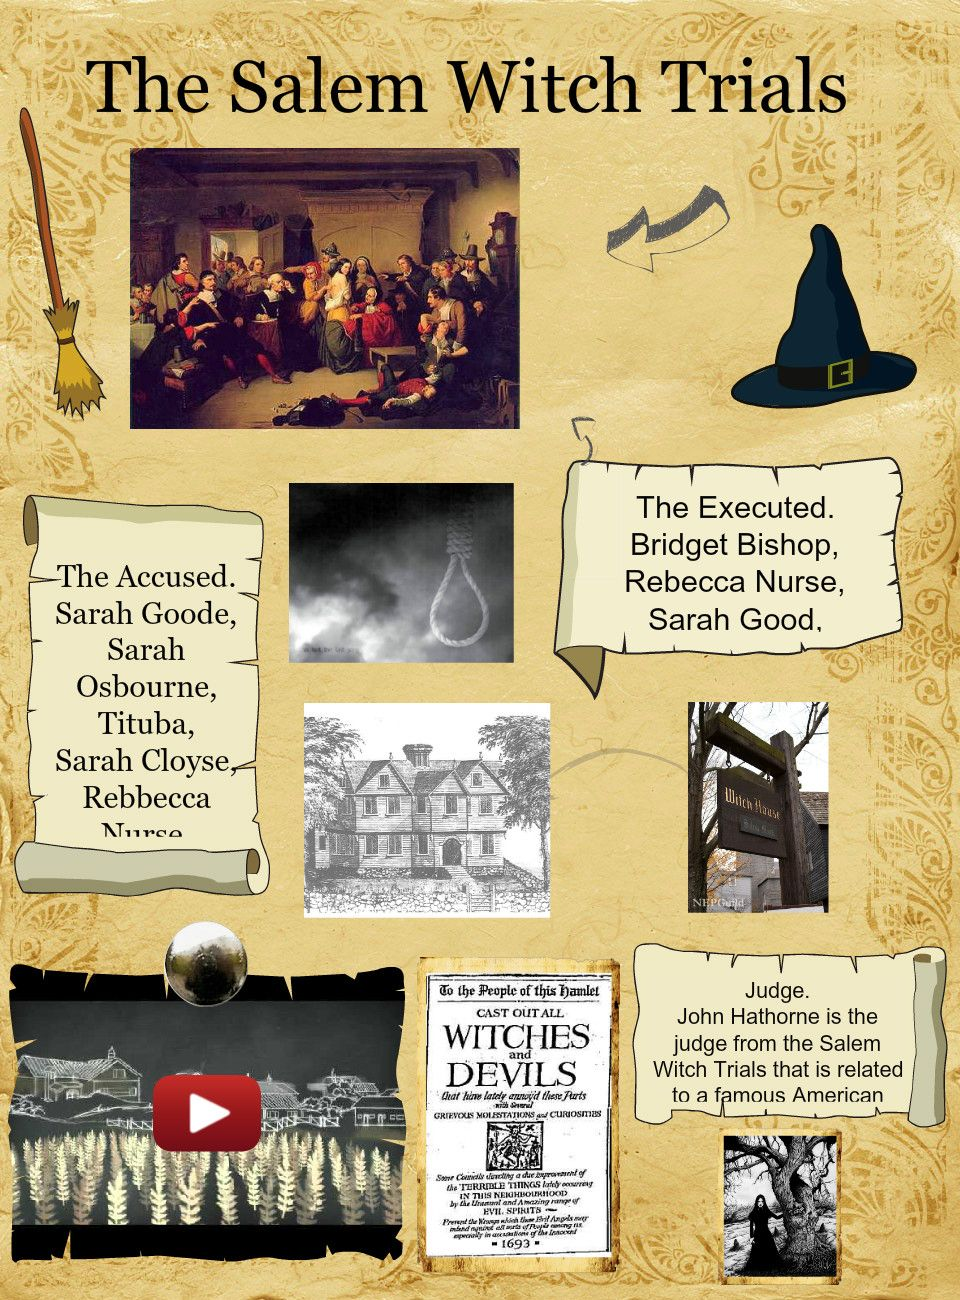 mccarthyism vs salem witch trials thesis The mccarthy era and the salem witch trials against communism gave birth to the term mccarthyism the salem witch trials took place in the seventeenth century in.